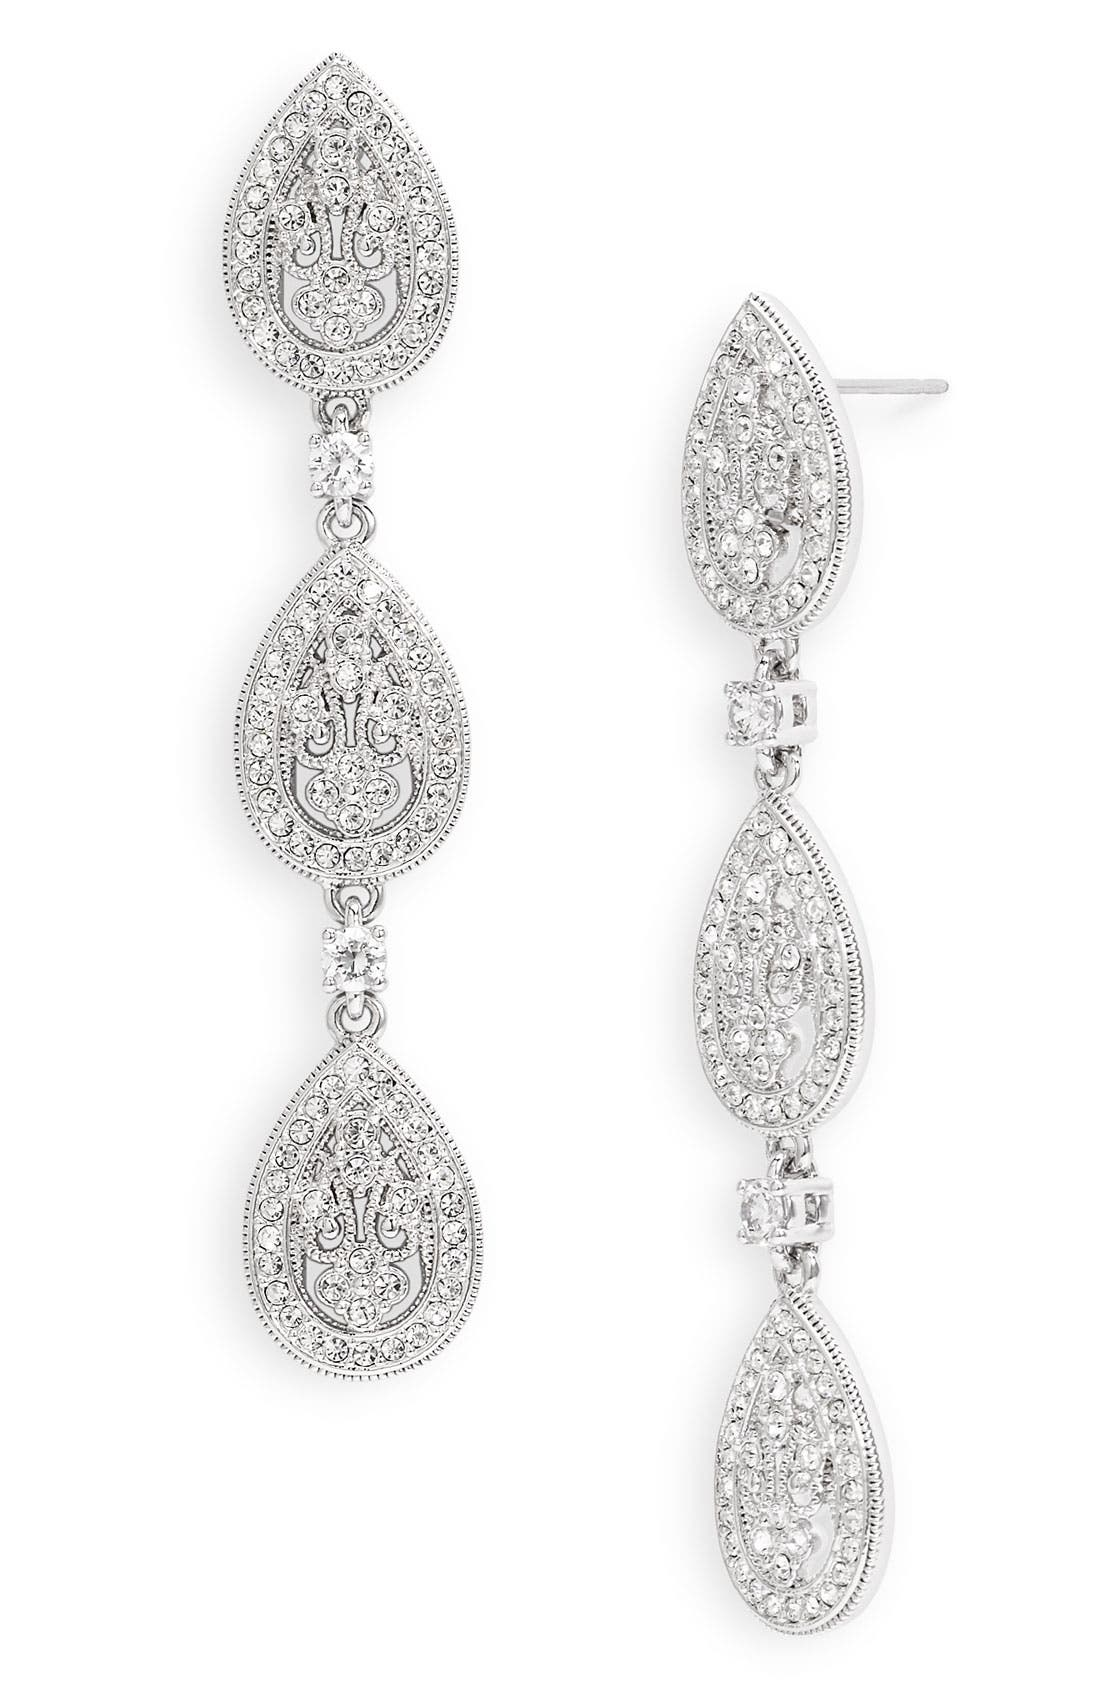 Alternate Image 1 Selected - Nadri Crystal Teardrop Linear Earrings